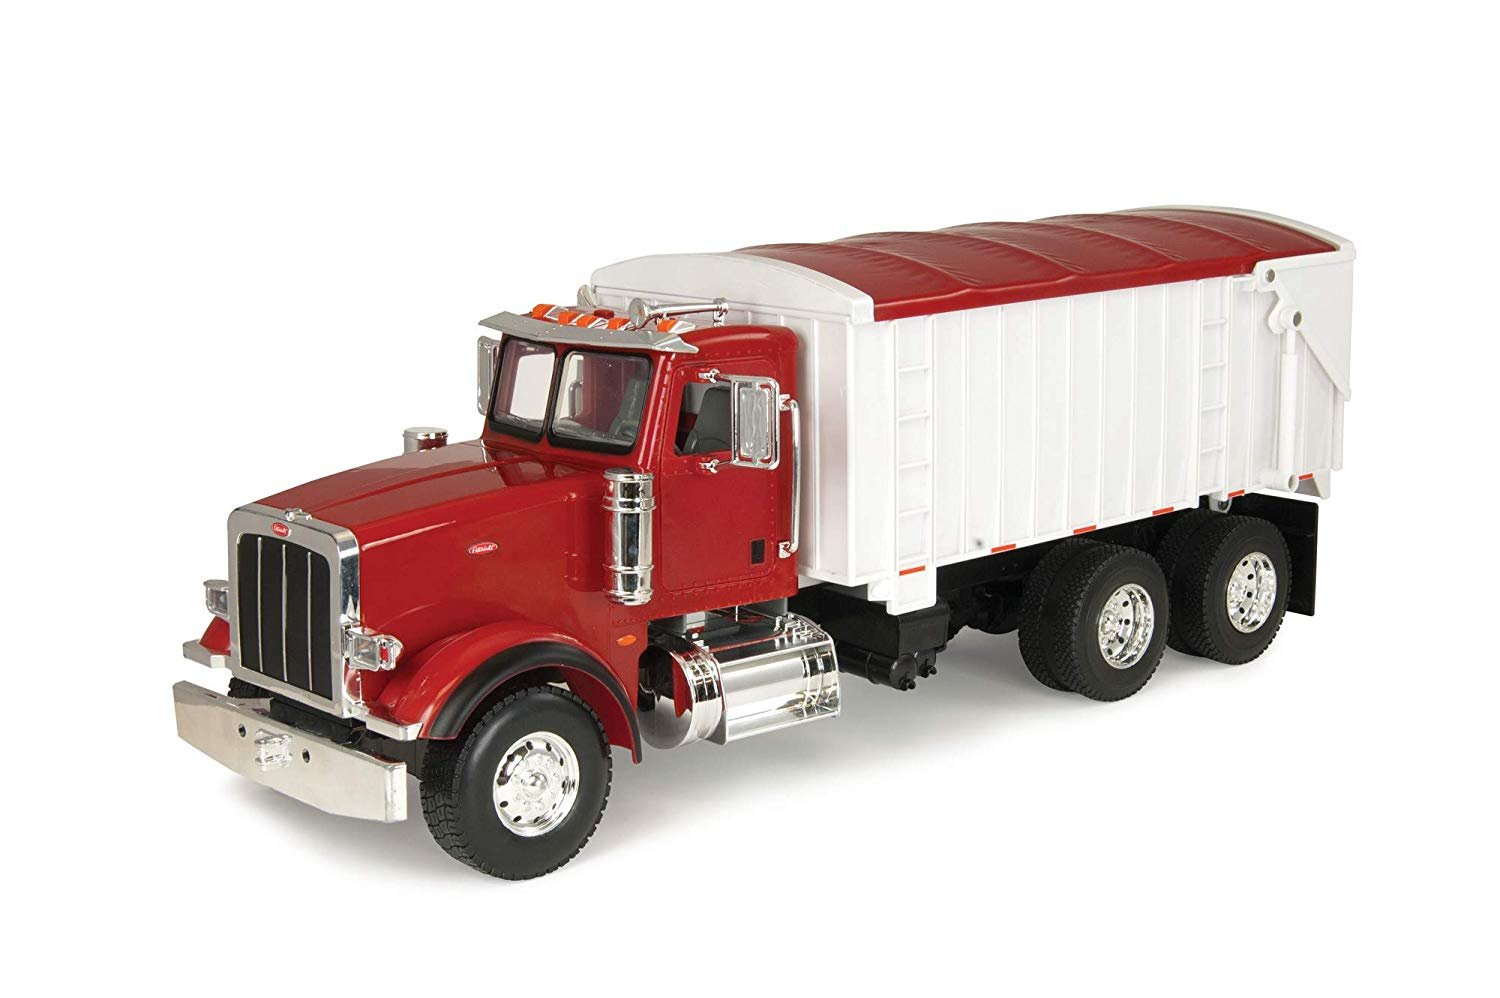 Big Farm Peterbilt Model 367 with Grain Box by Tomy